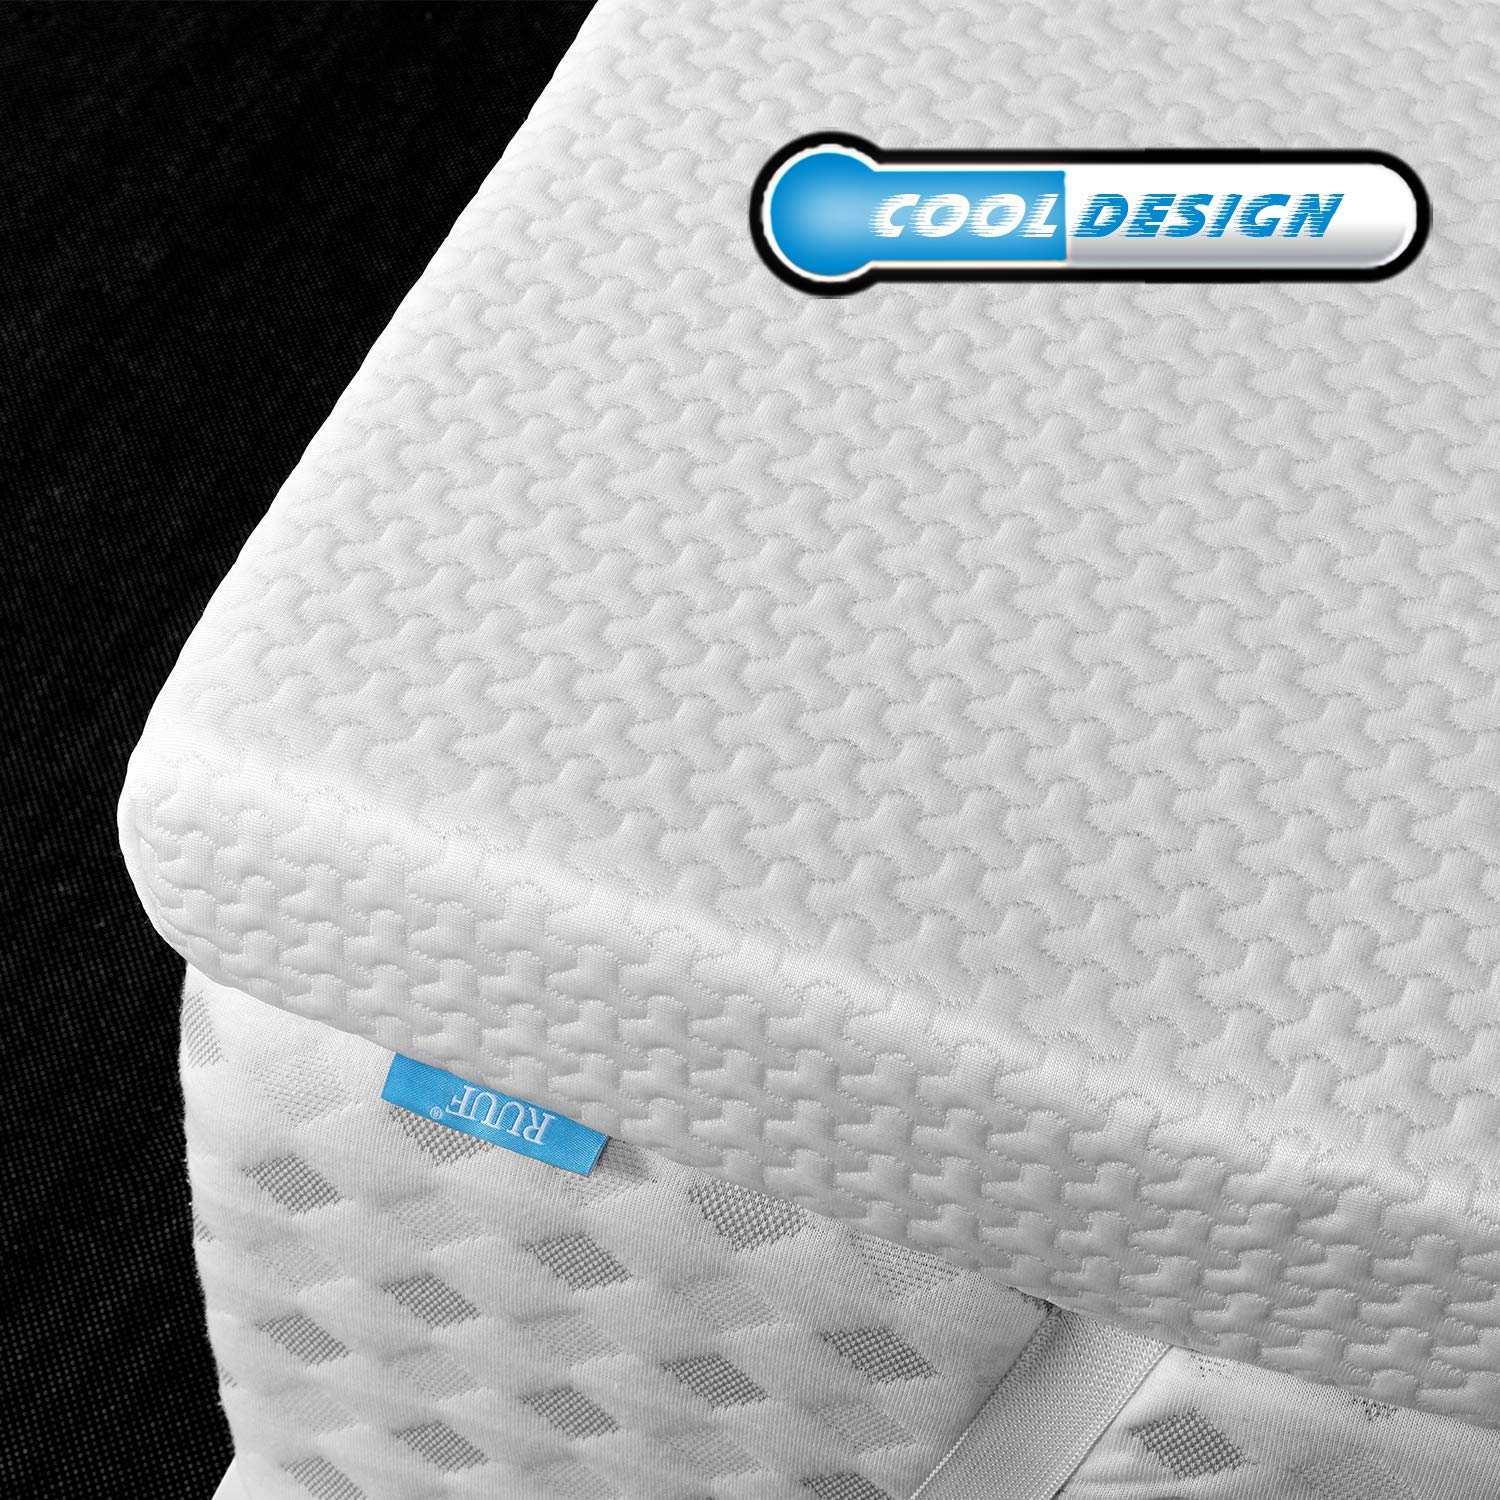 RUUF Memory Foam Mattress Topper Queen 3-Inch High Density Active Cooling Bed Topper Removable Washable Hypoallergenic Cover CertiPUR-US